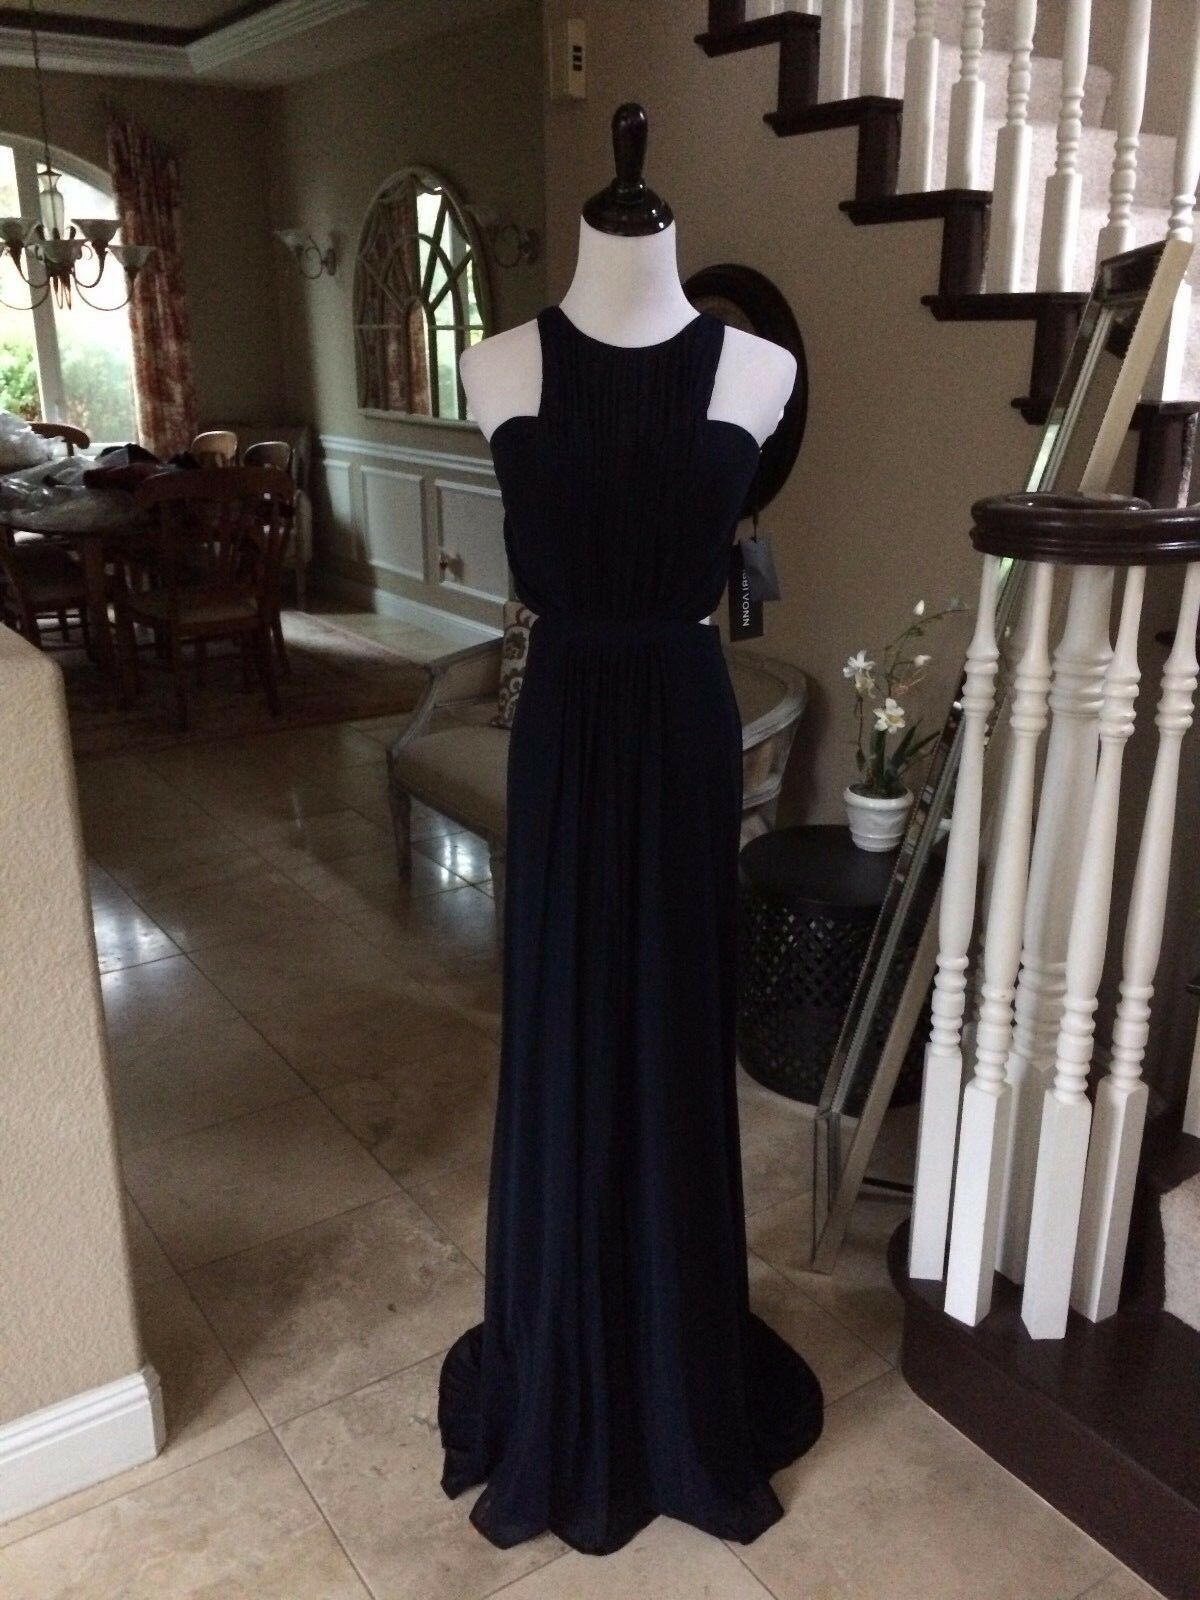 299 NWT NAVY blueE ABBI VONN BY LA FEMME PROM PAGEANT FORMAL DRESS GOWN